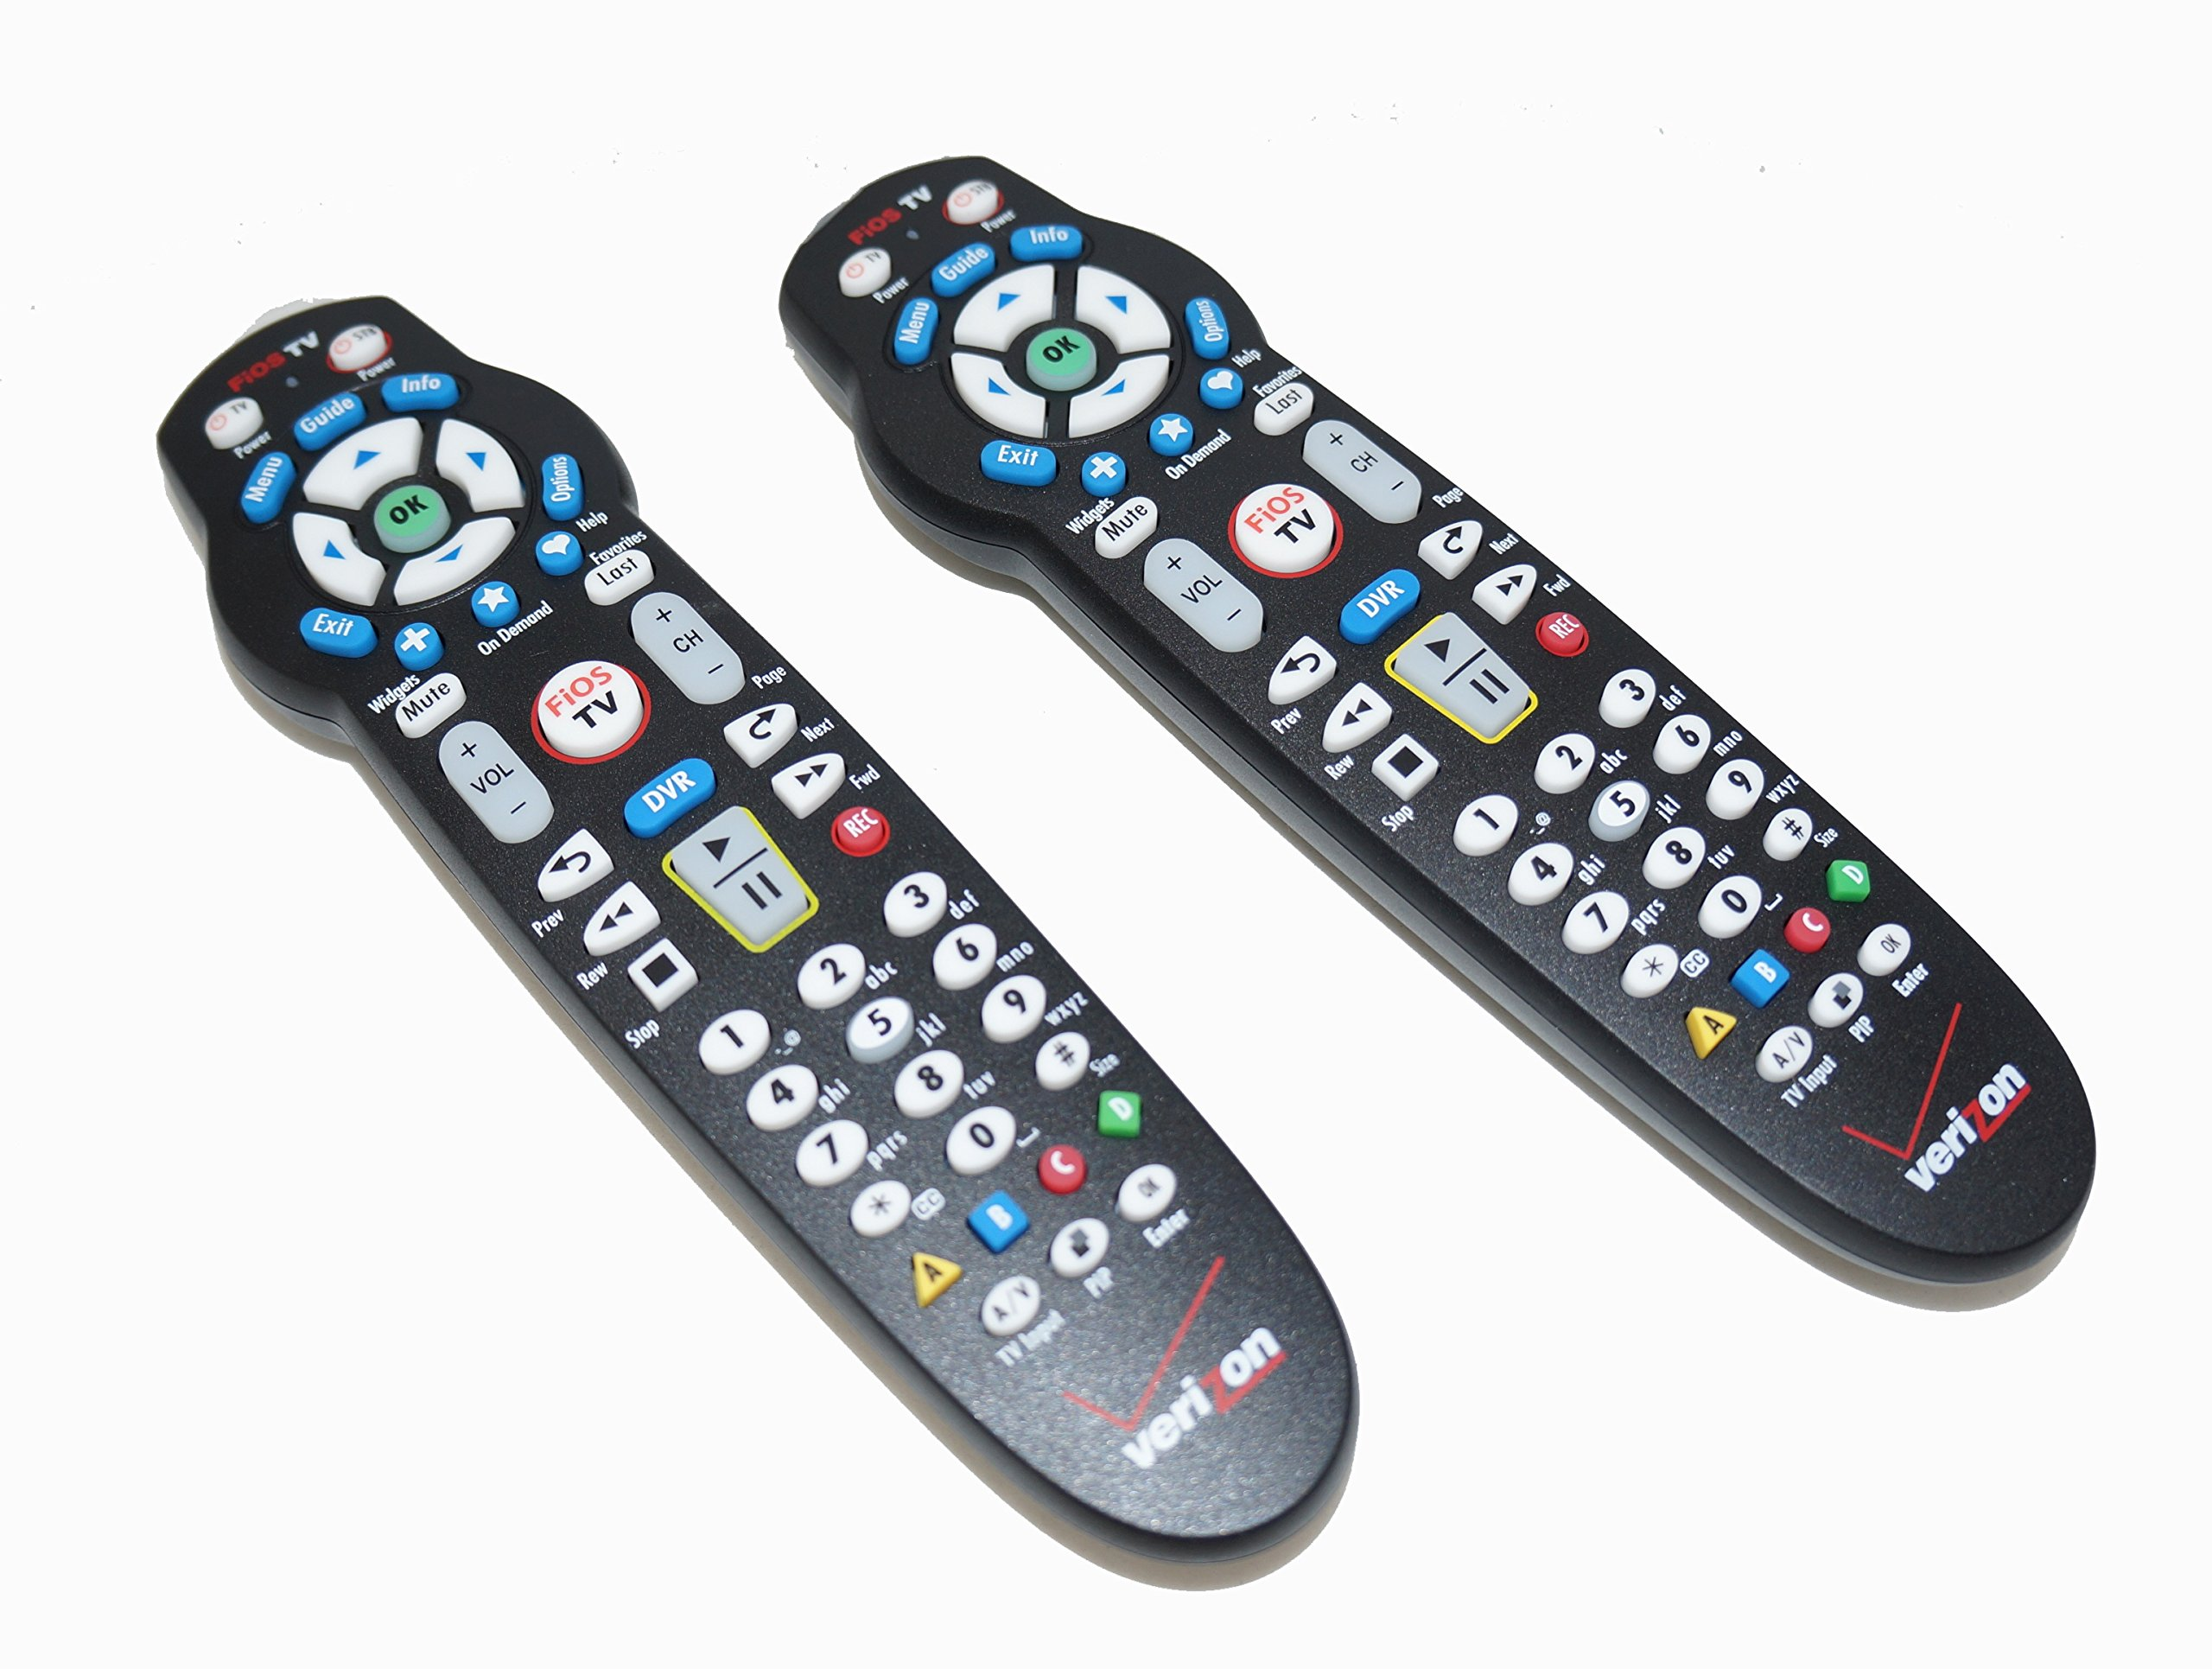 Set of TWO Verizon FiOS TV Replacement Remote Controls by Frontier works with Verizon FiOS systems